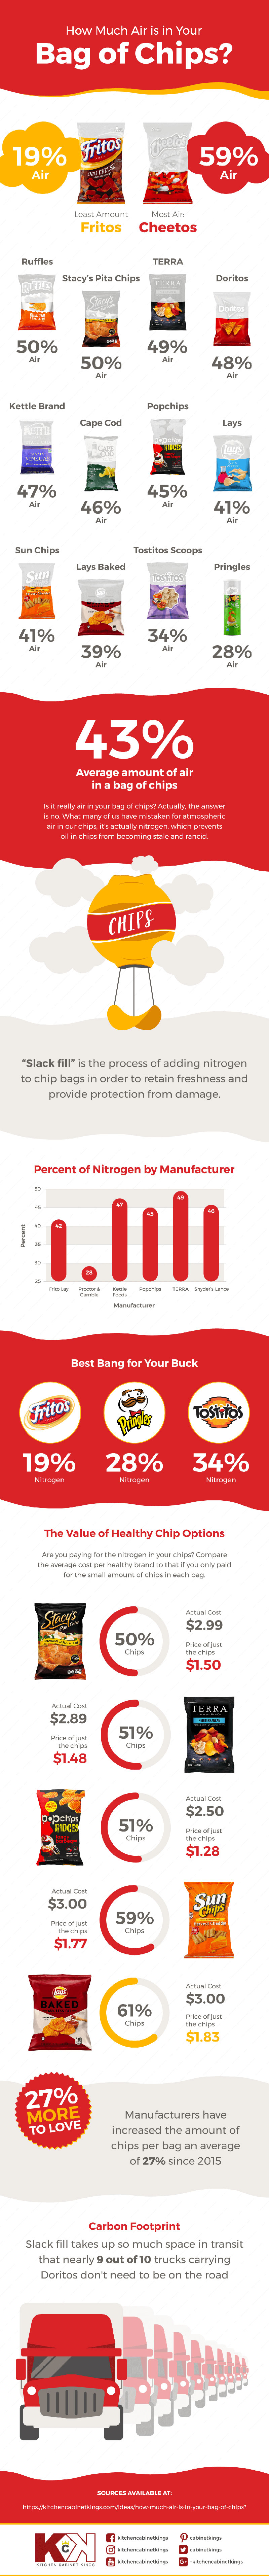 how much air is in your bag of chips infographic The Percent of Air Per Bag of Chips (Infographic)